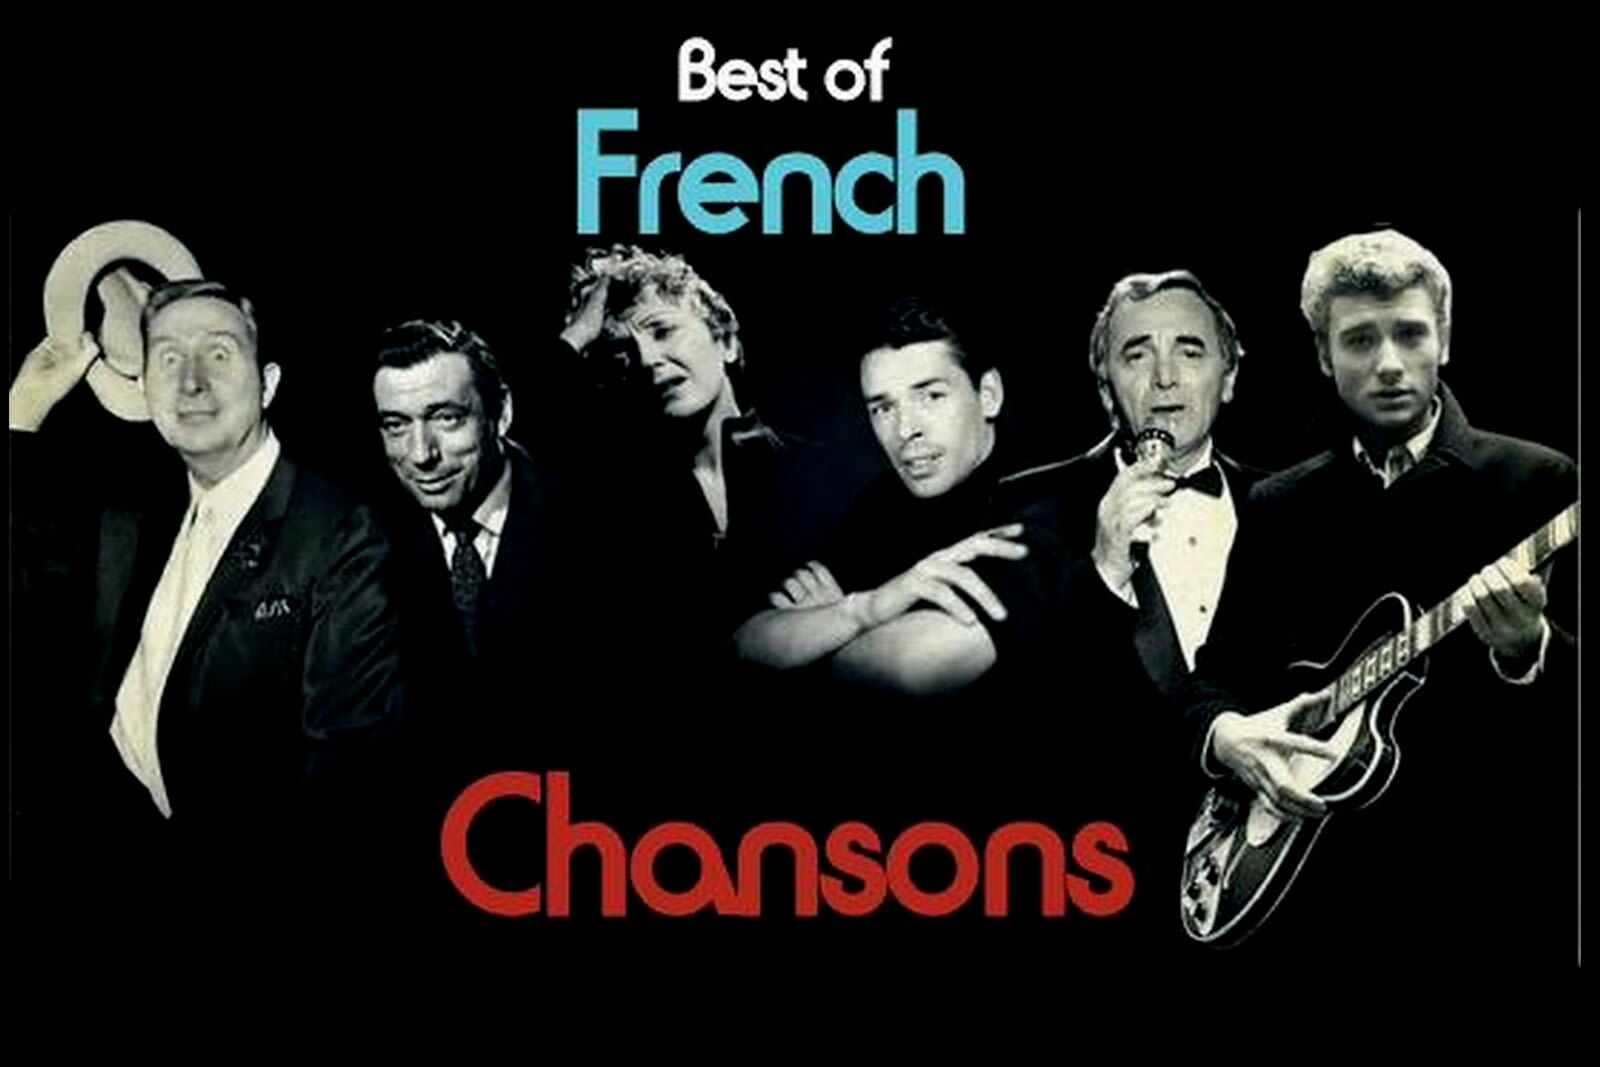 The Best of French Chansons Featuring So French Cabaret at